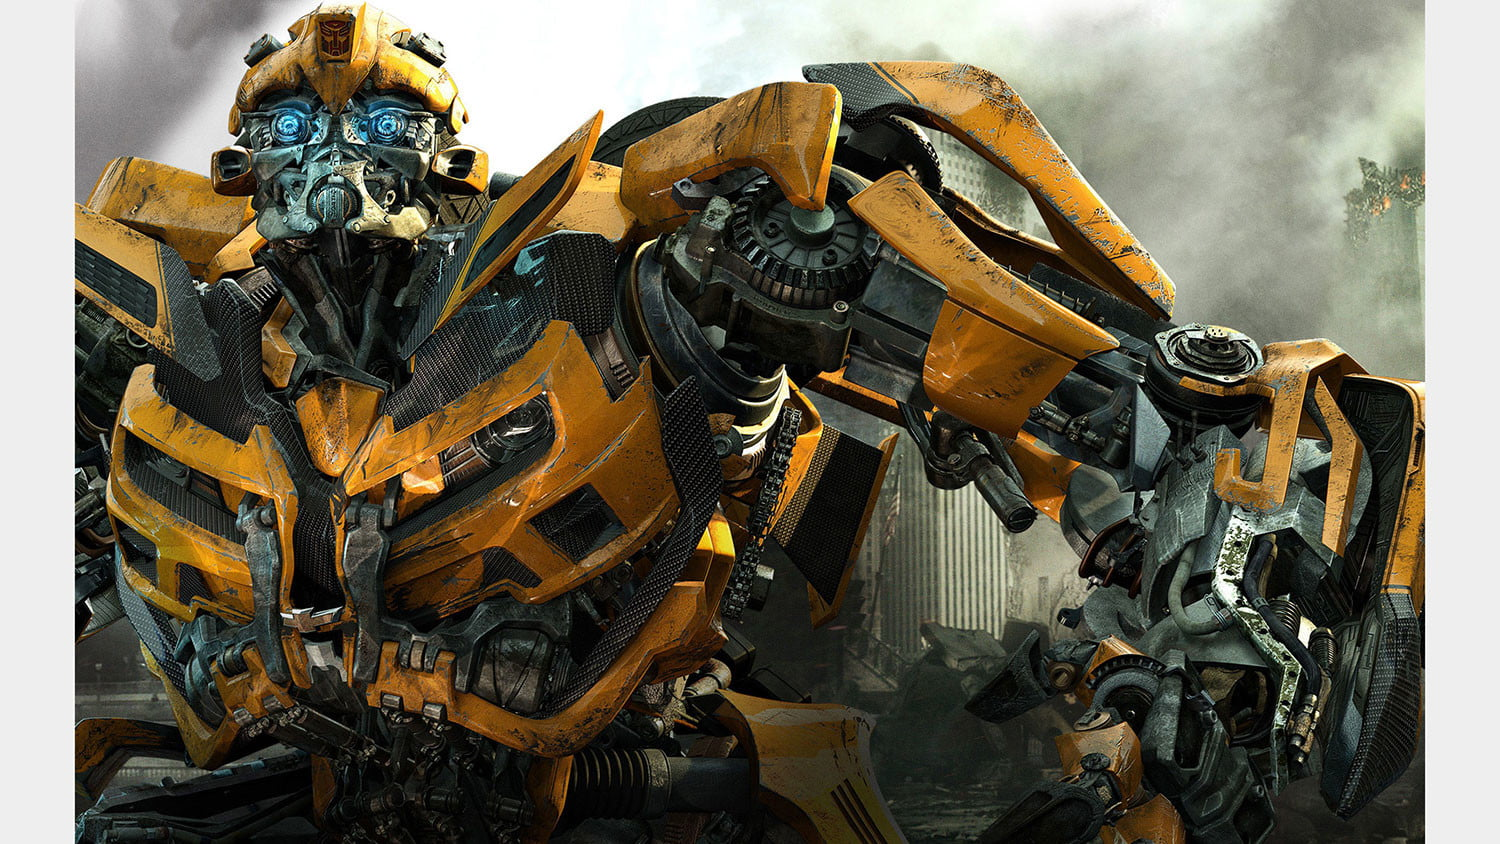 transformers spinoff 'bumblebee' has its first trailer | digital trends